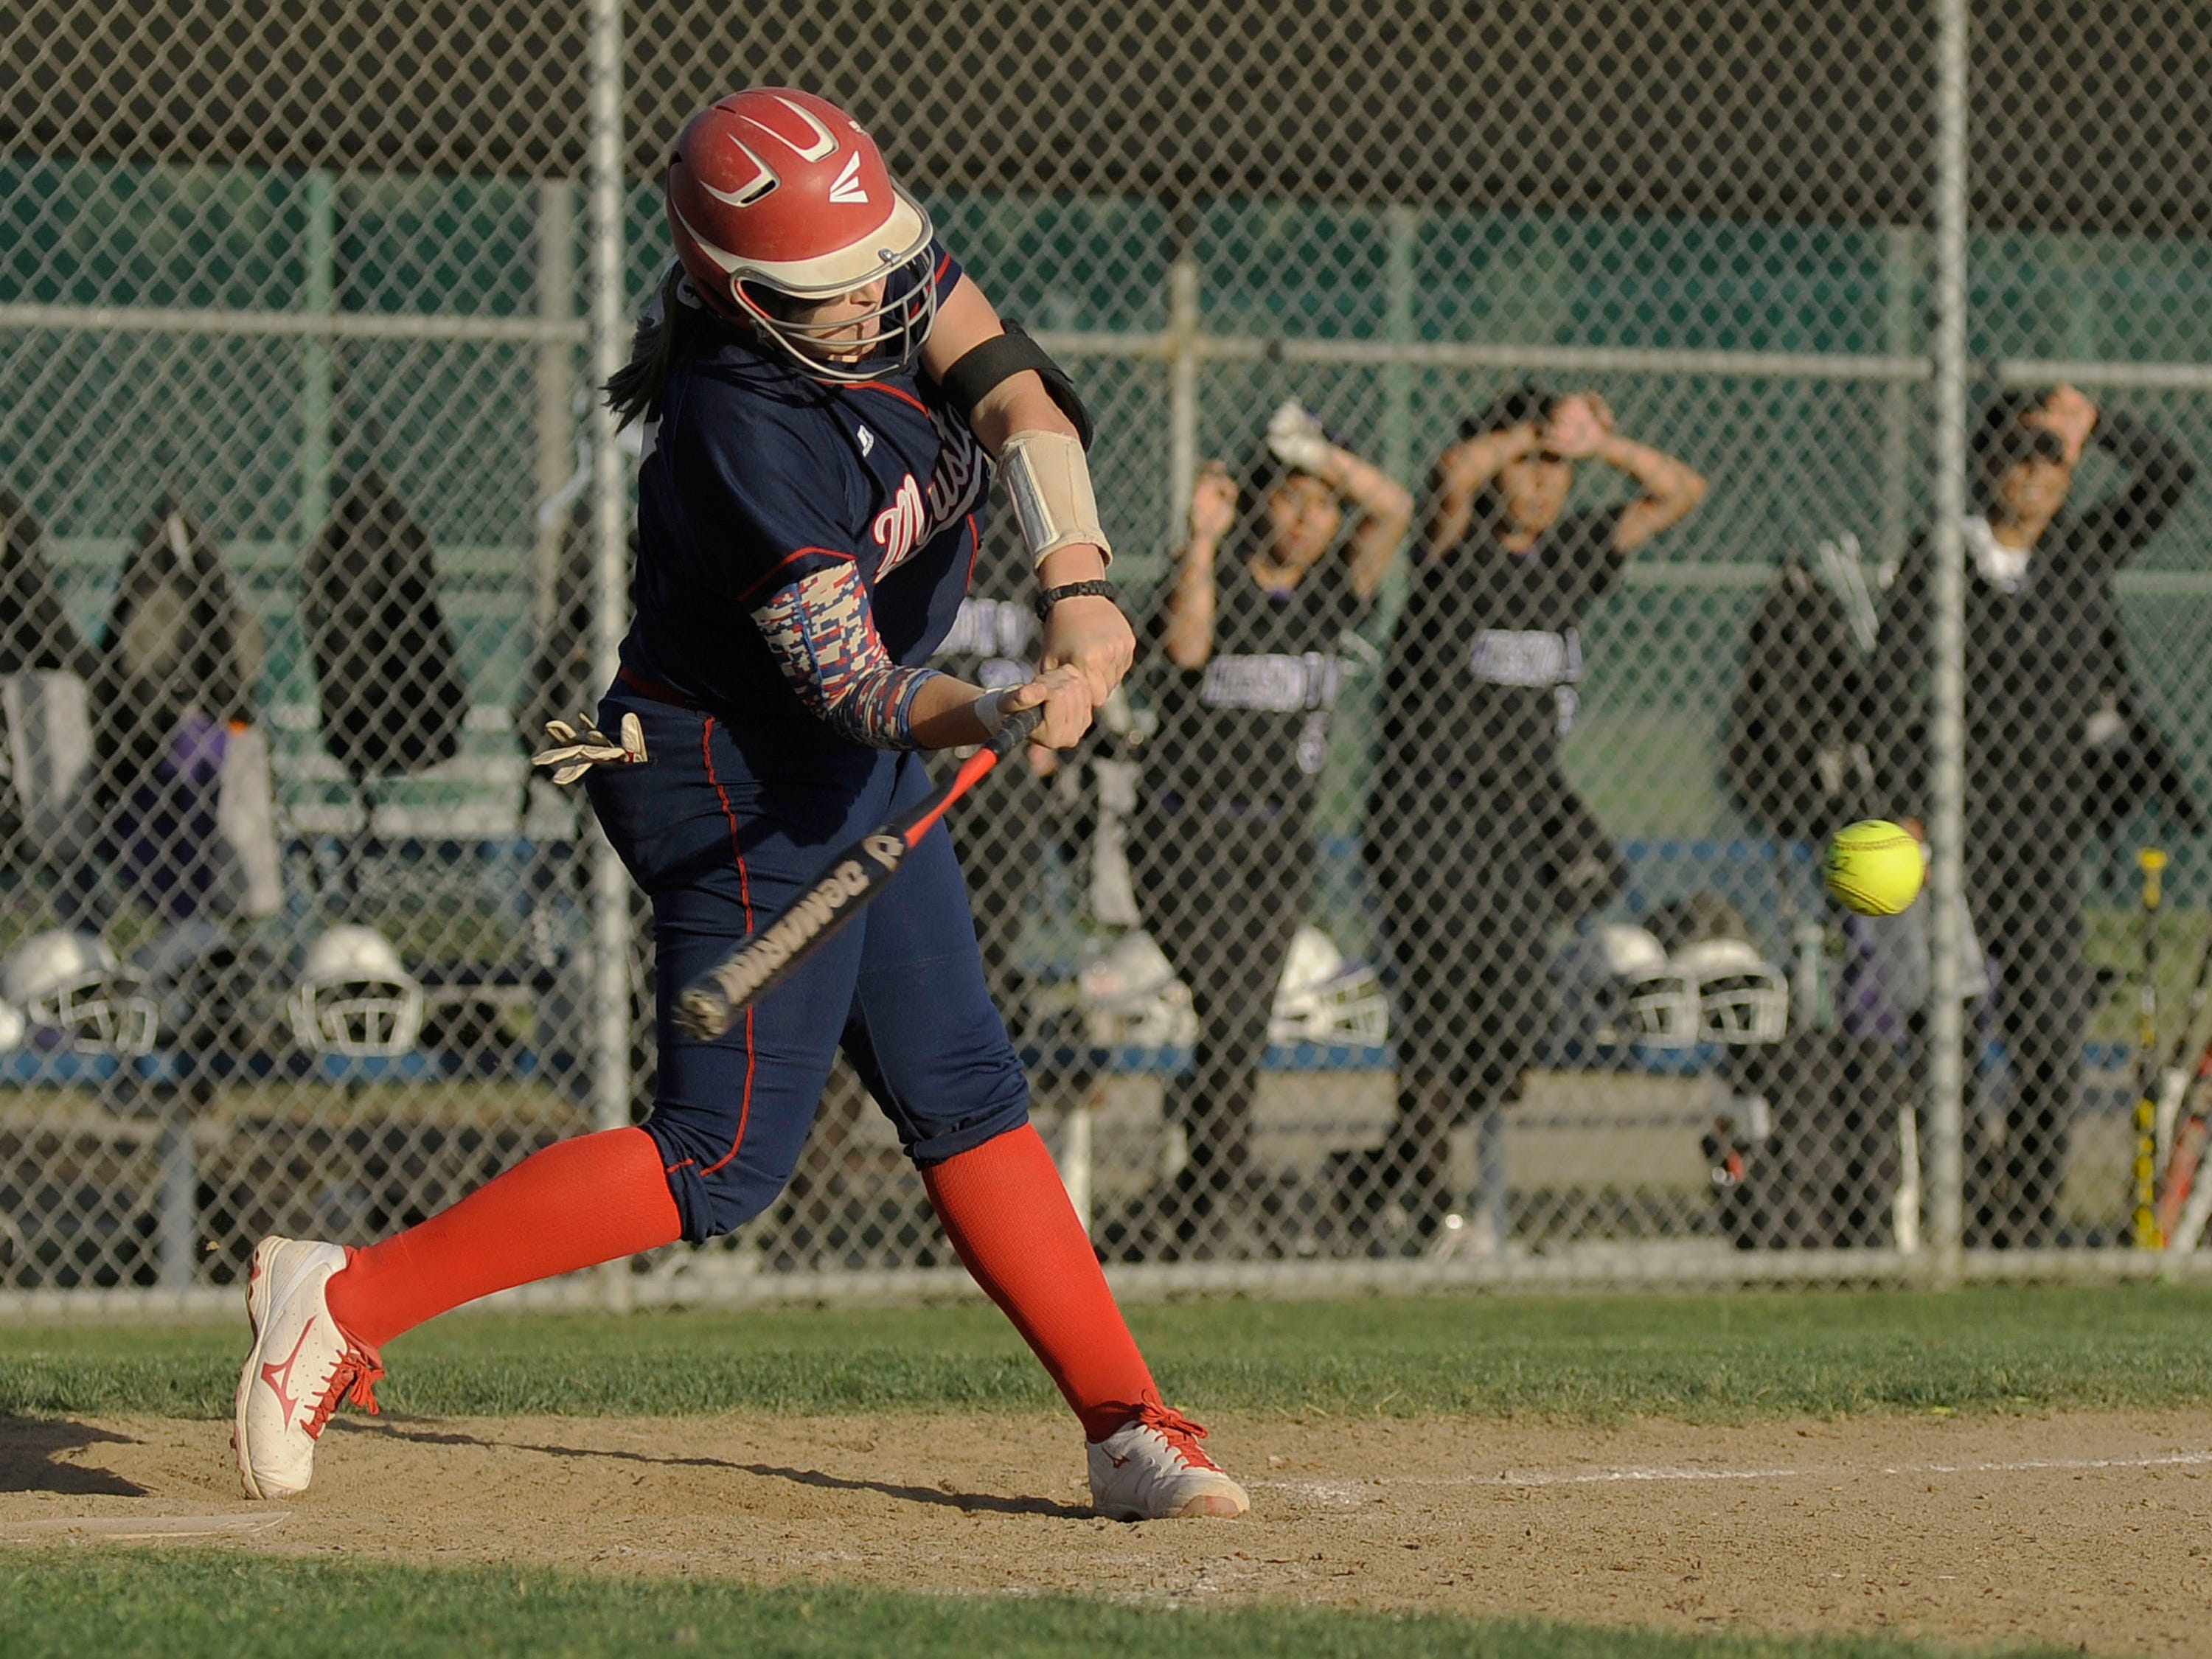 Tulare Western's Kelcey Carrasco is tied for the Central Section lead in home runs with 10. She is a Michigan State verbal commit.